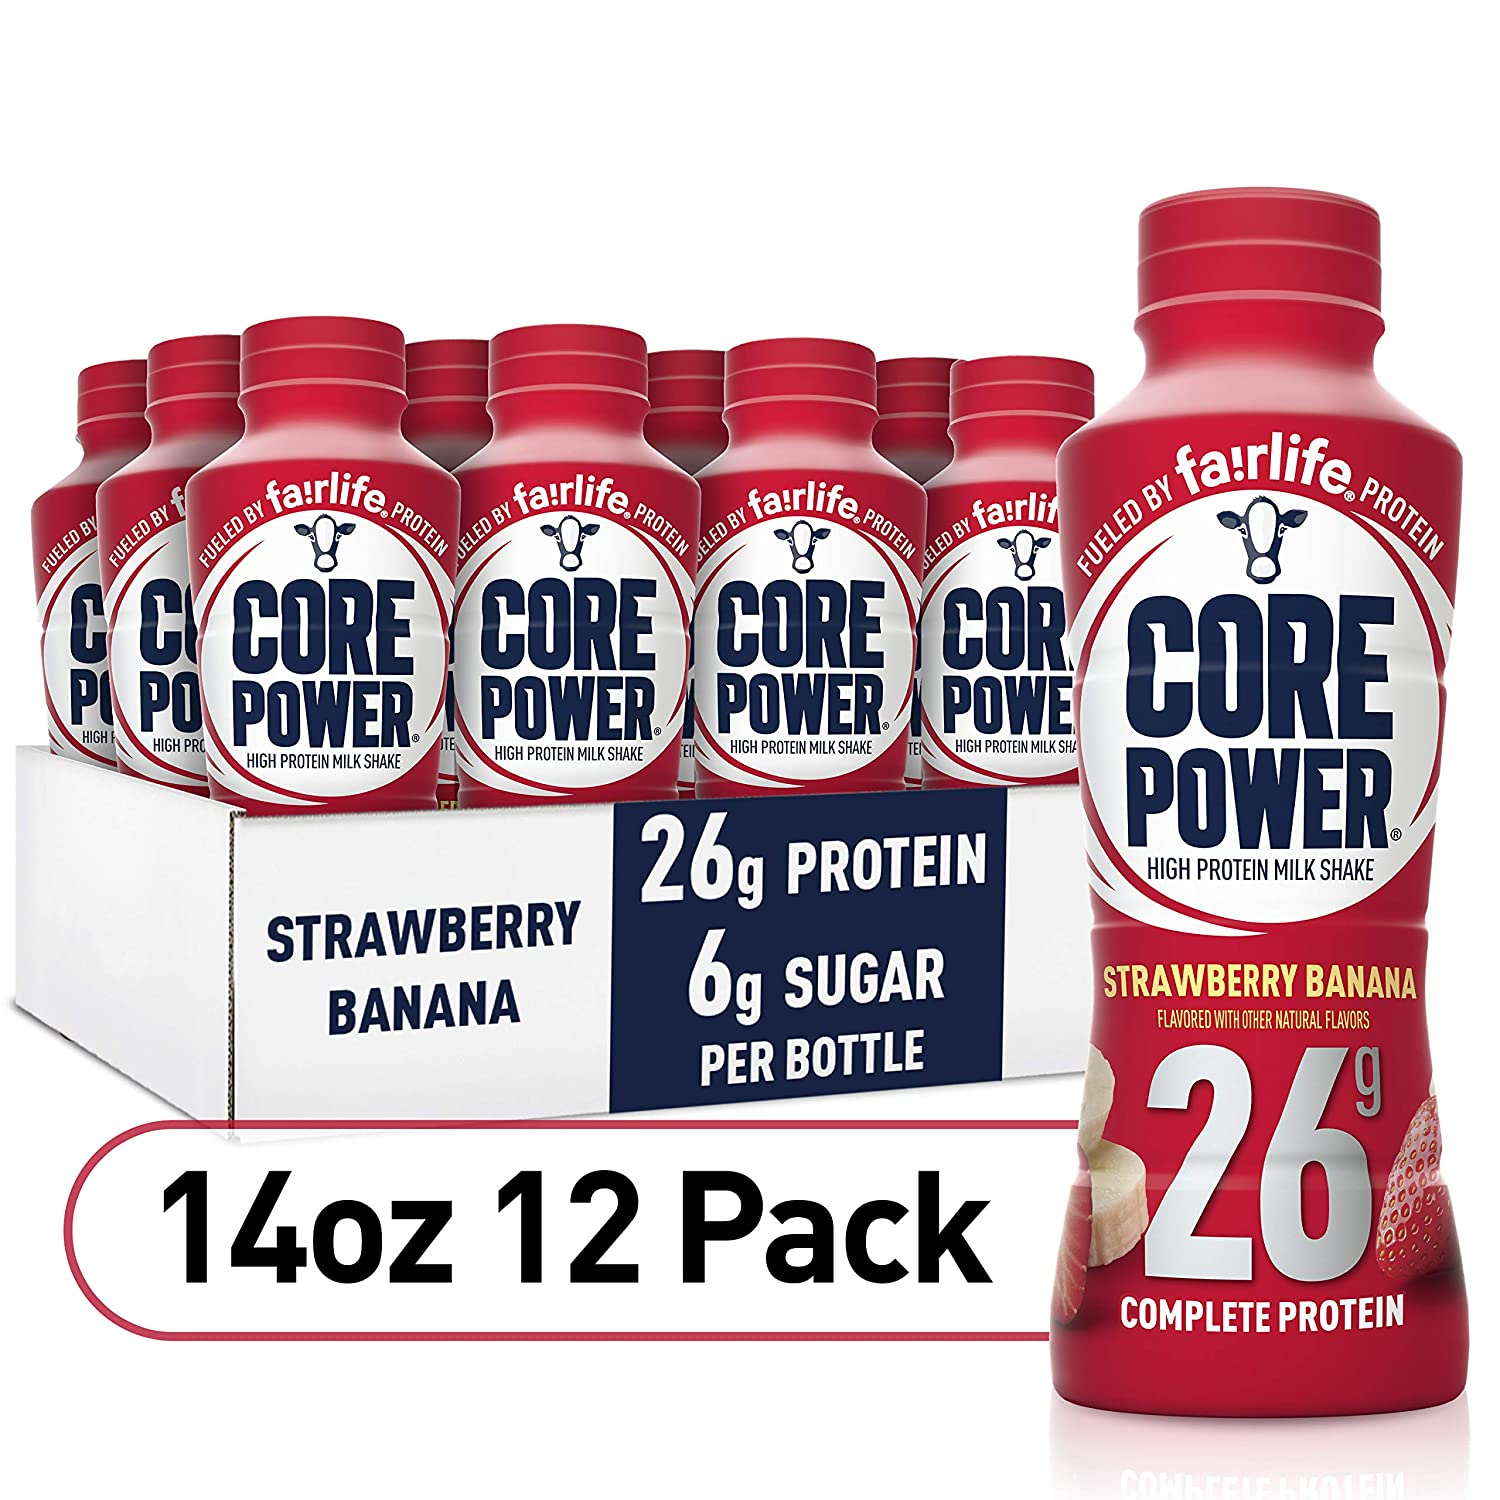 Core Power fairlife Core Power High Protein Milk Shake, Strawberry banana, 14 Fl Oz (Pack of 12)